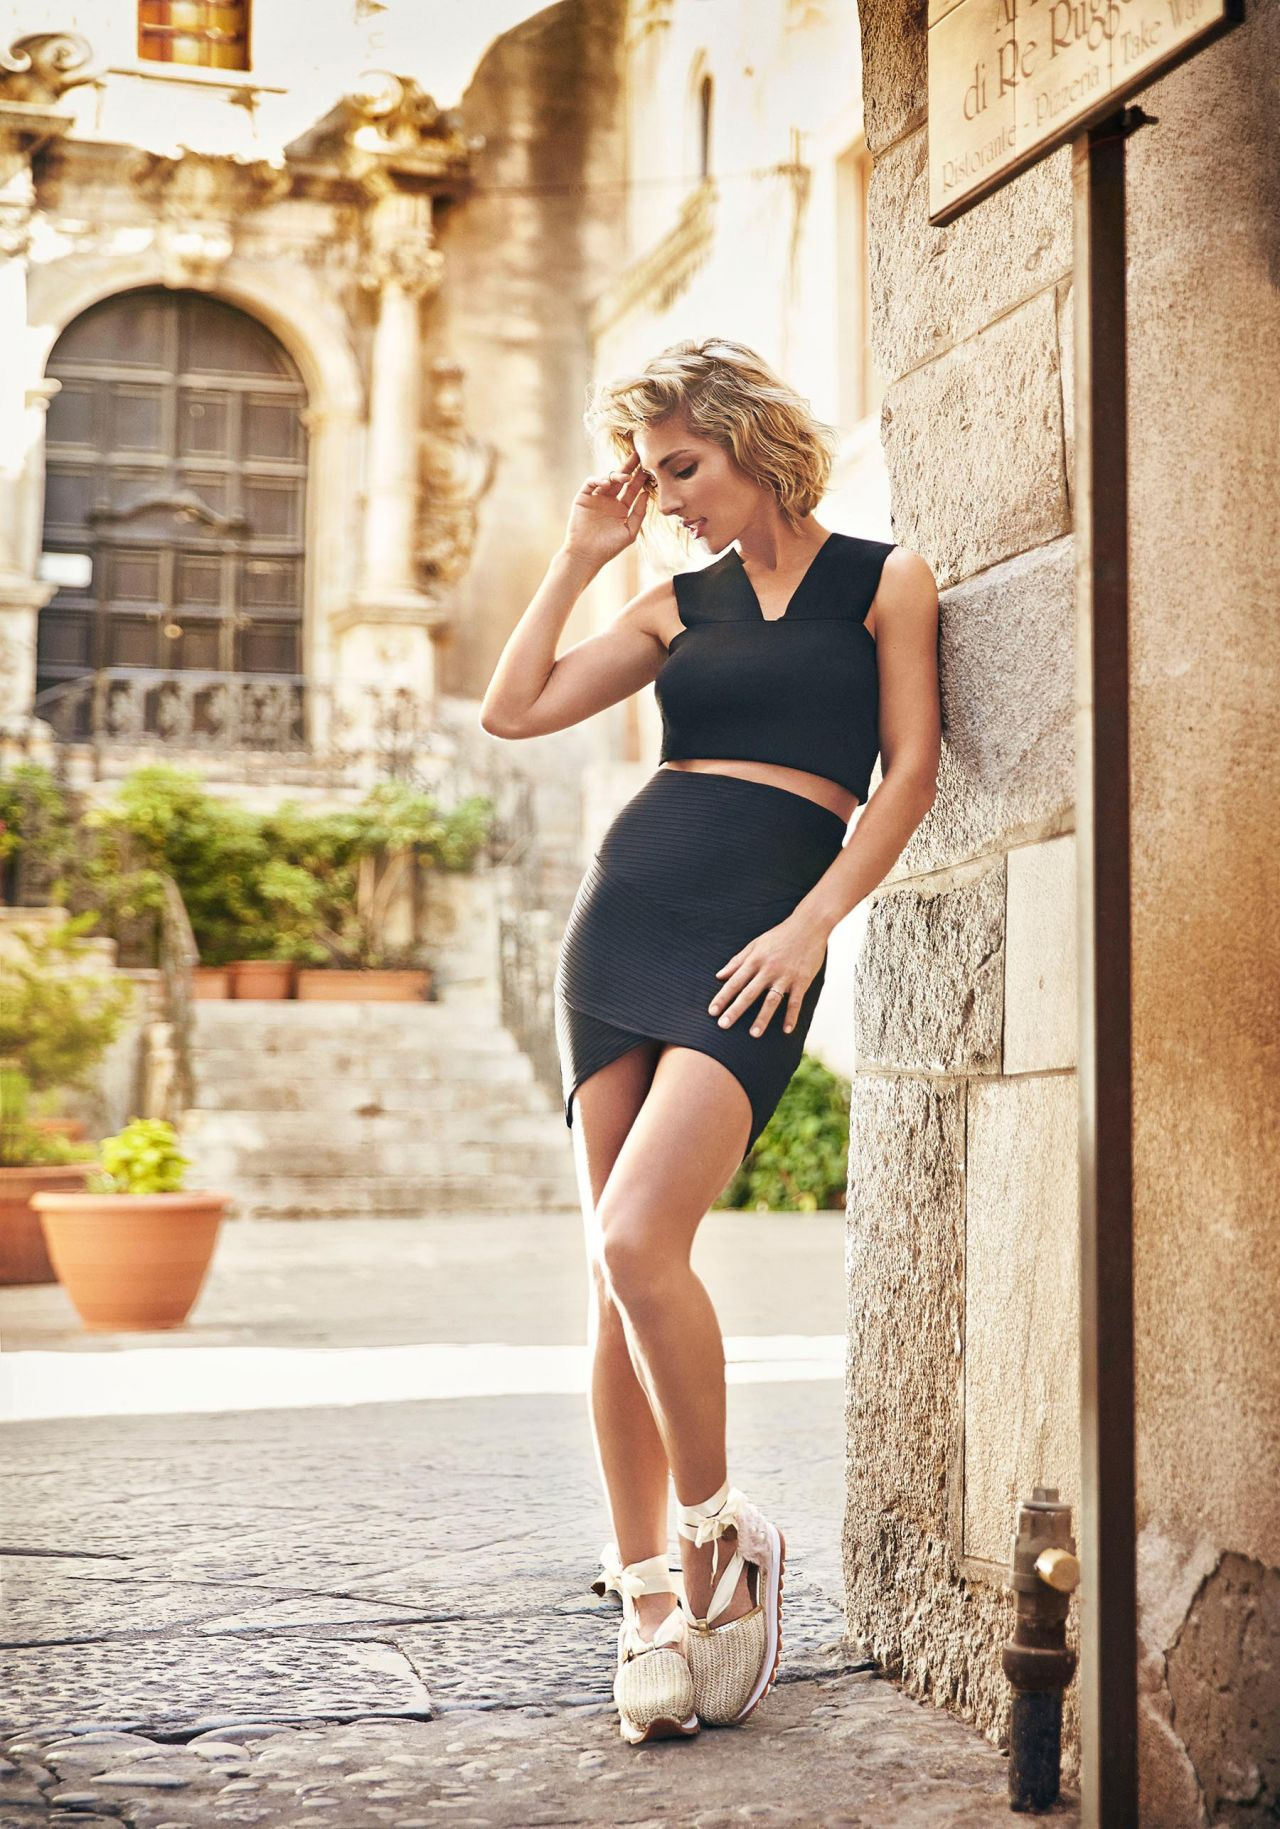 la mejor actitud 770f5 702a7 Elsa Pataky - Gioseppo Photoshoot - 2018 - Elsa Pataky Photo ...